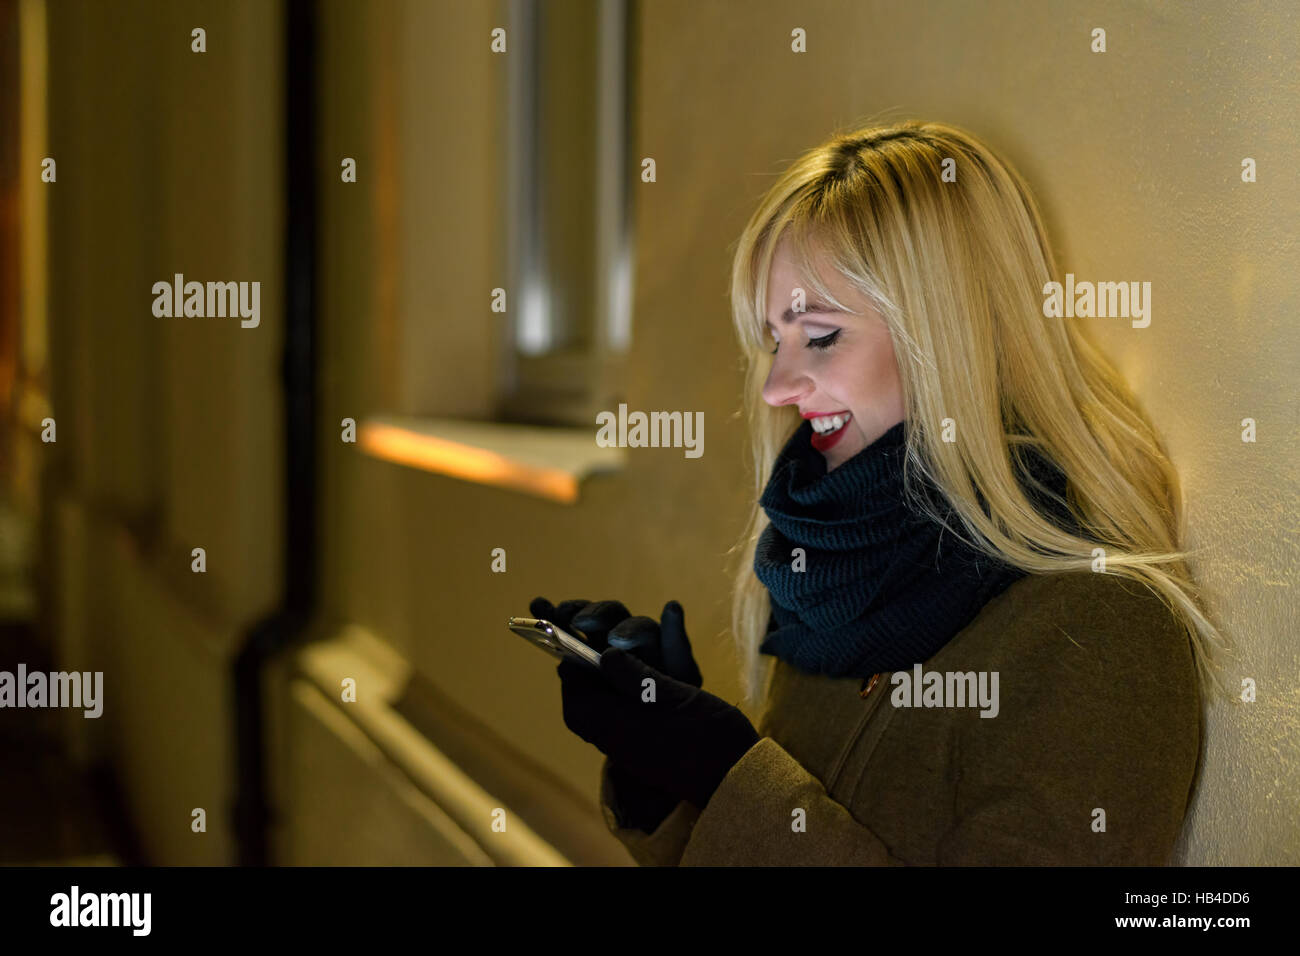 Smiling woman using smartphone at night - Stock Image